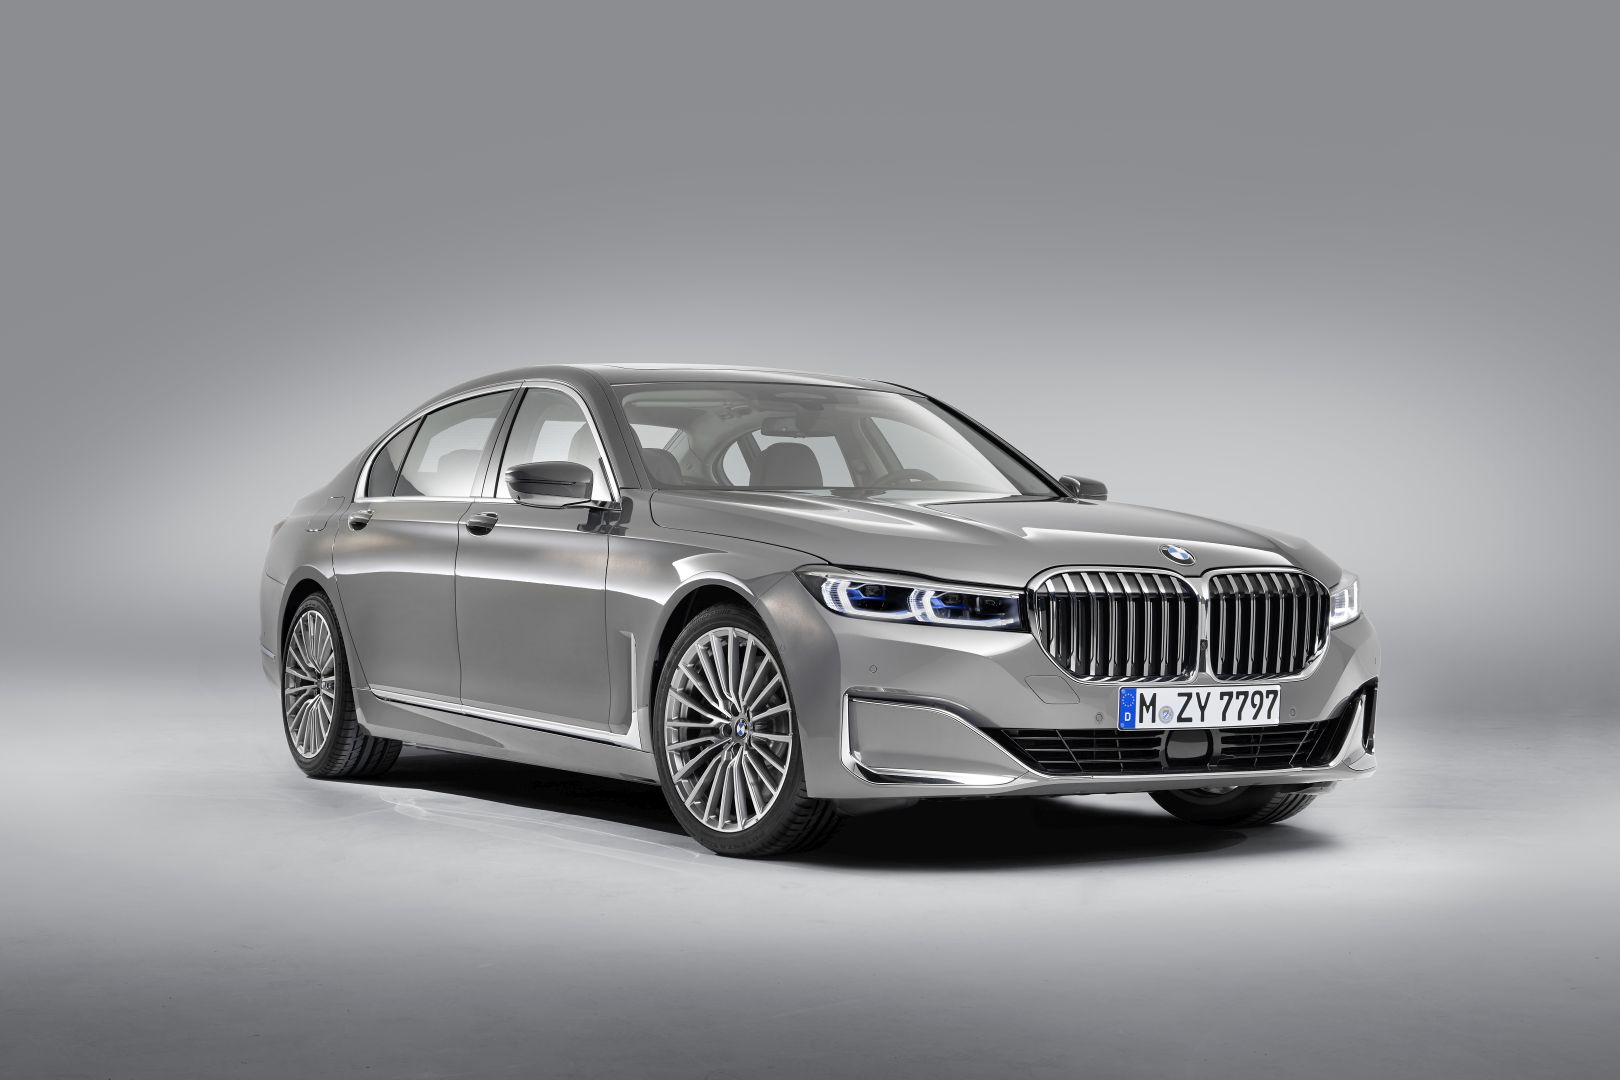 2020 Bmw 7 Series Begins Production In Dingolfing